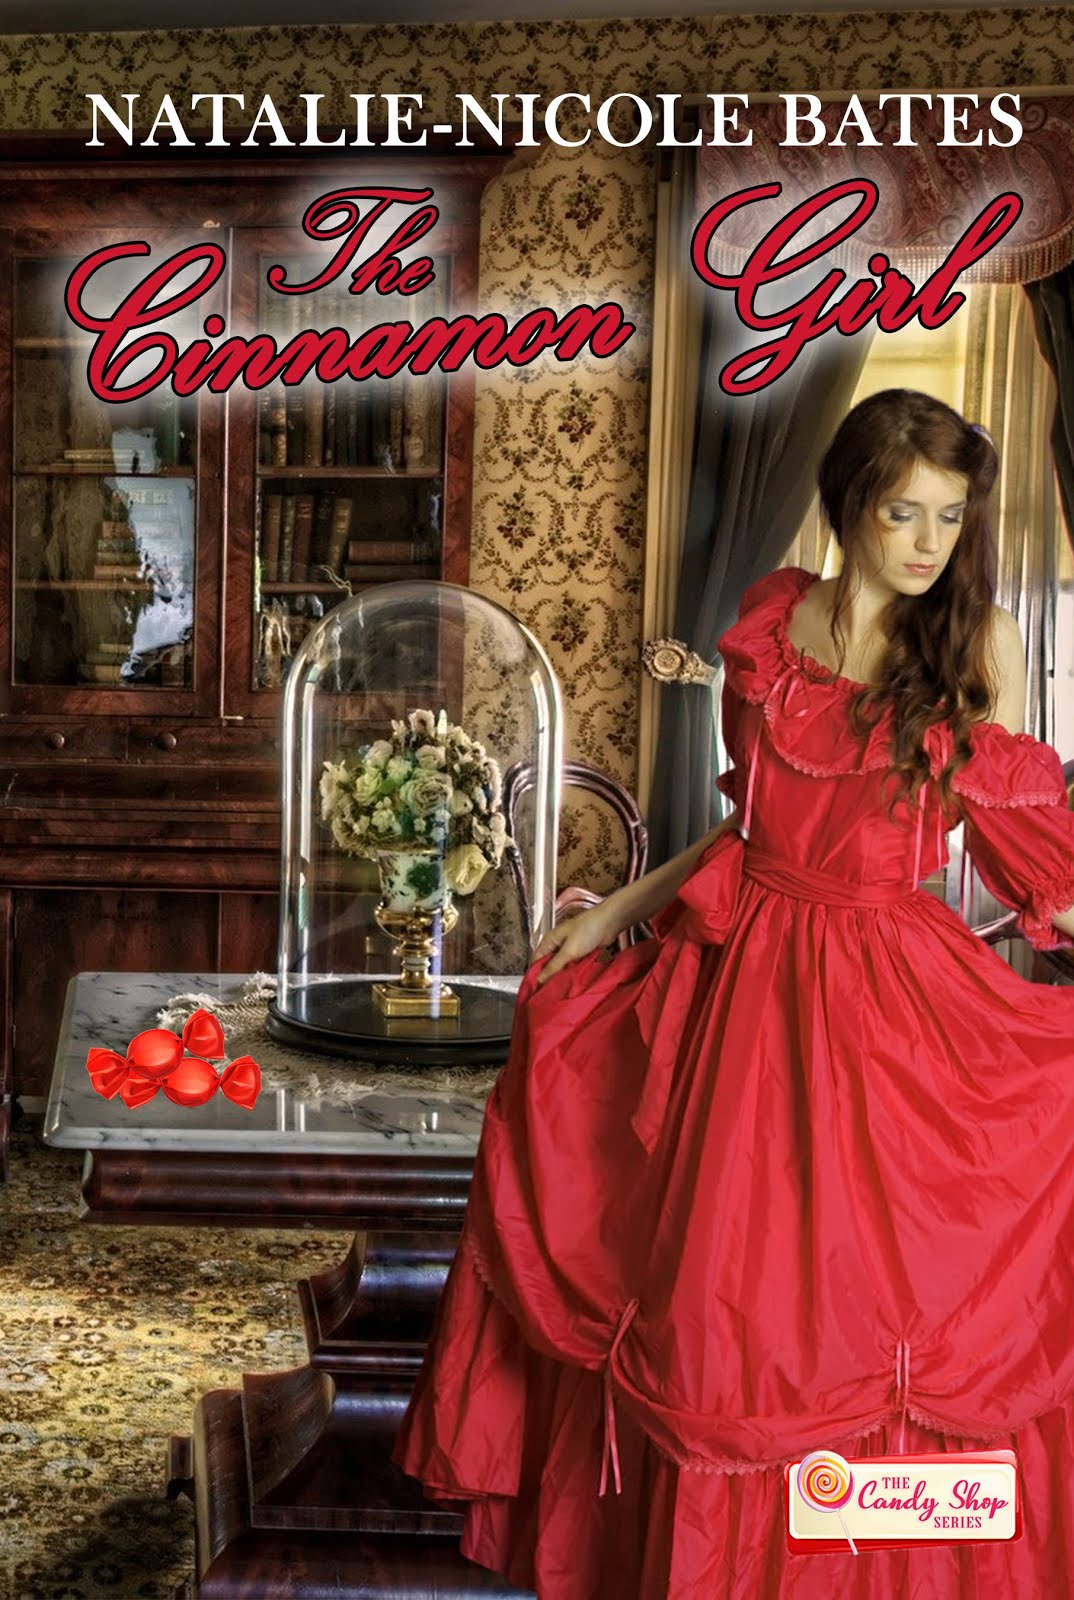 The Cinnamon Girl